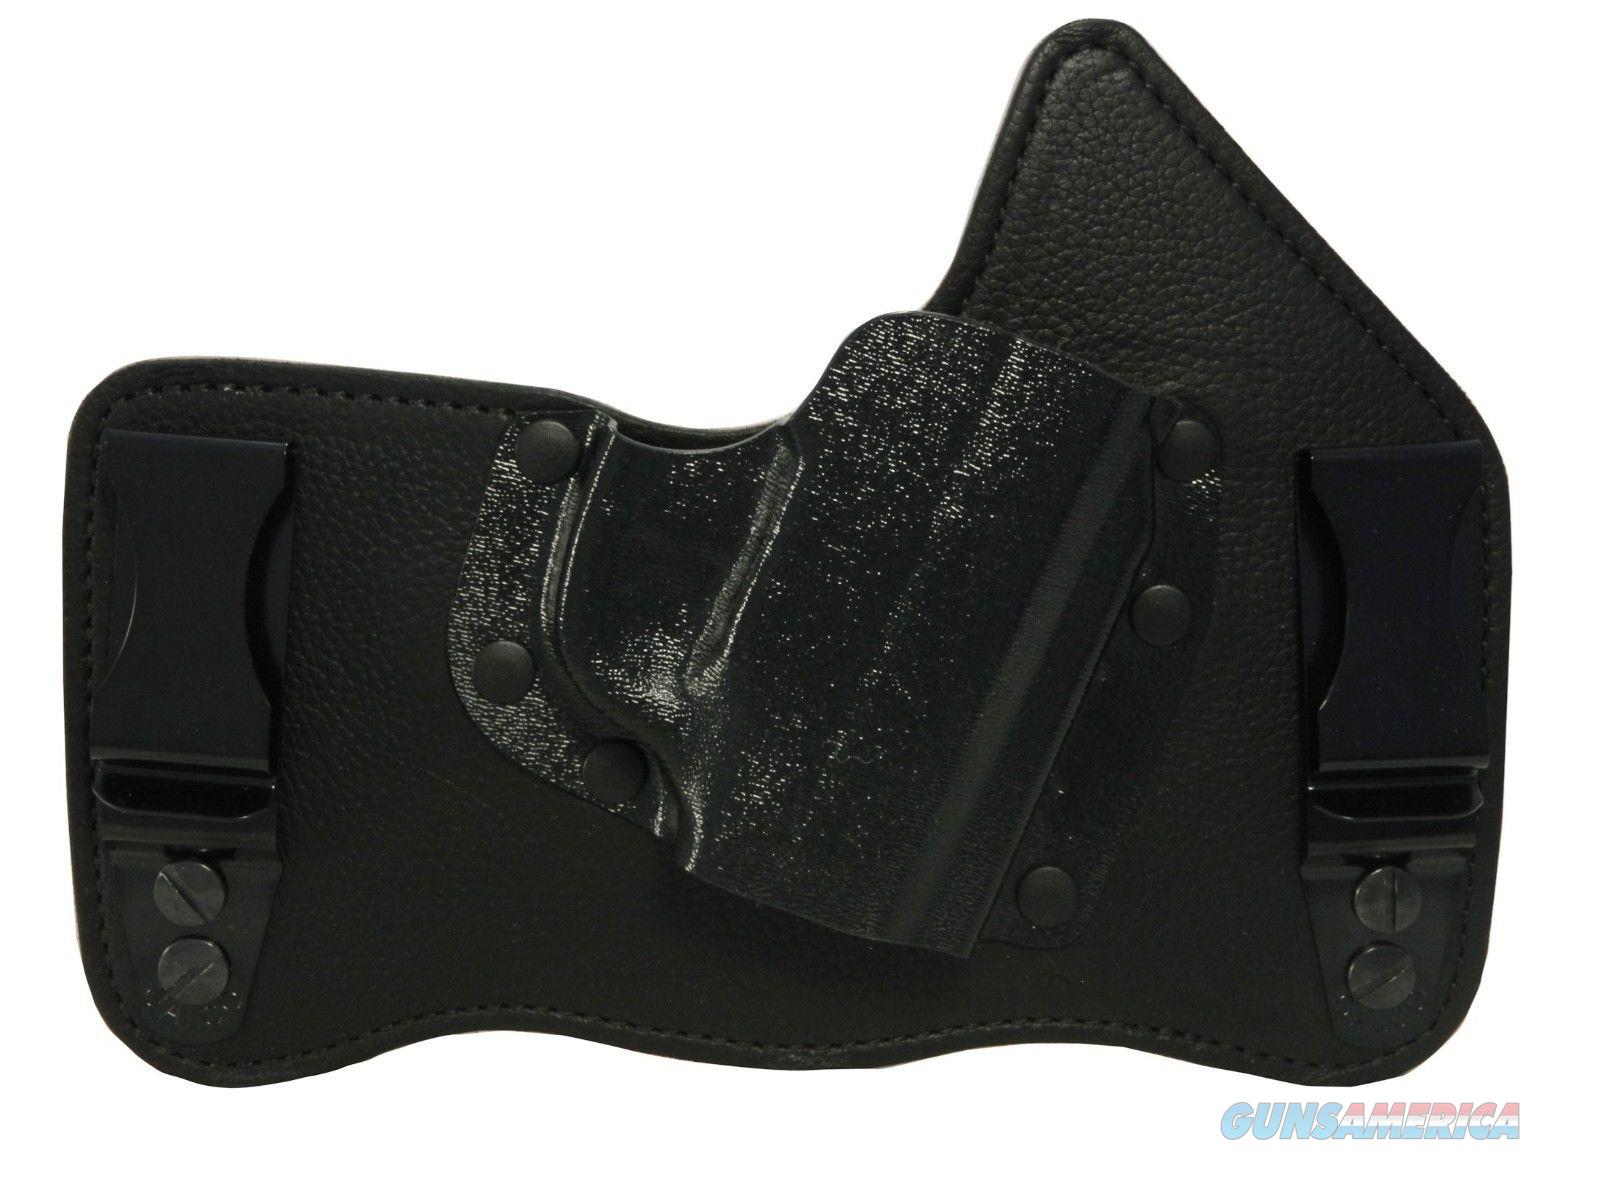 Galco KingTuk IWB Holster RH Fits Glock 43, KT662B  Non-Guns > Holsters and Gunleather > Concealed Carry